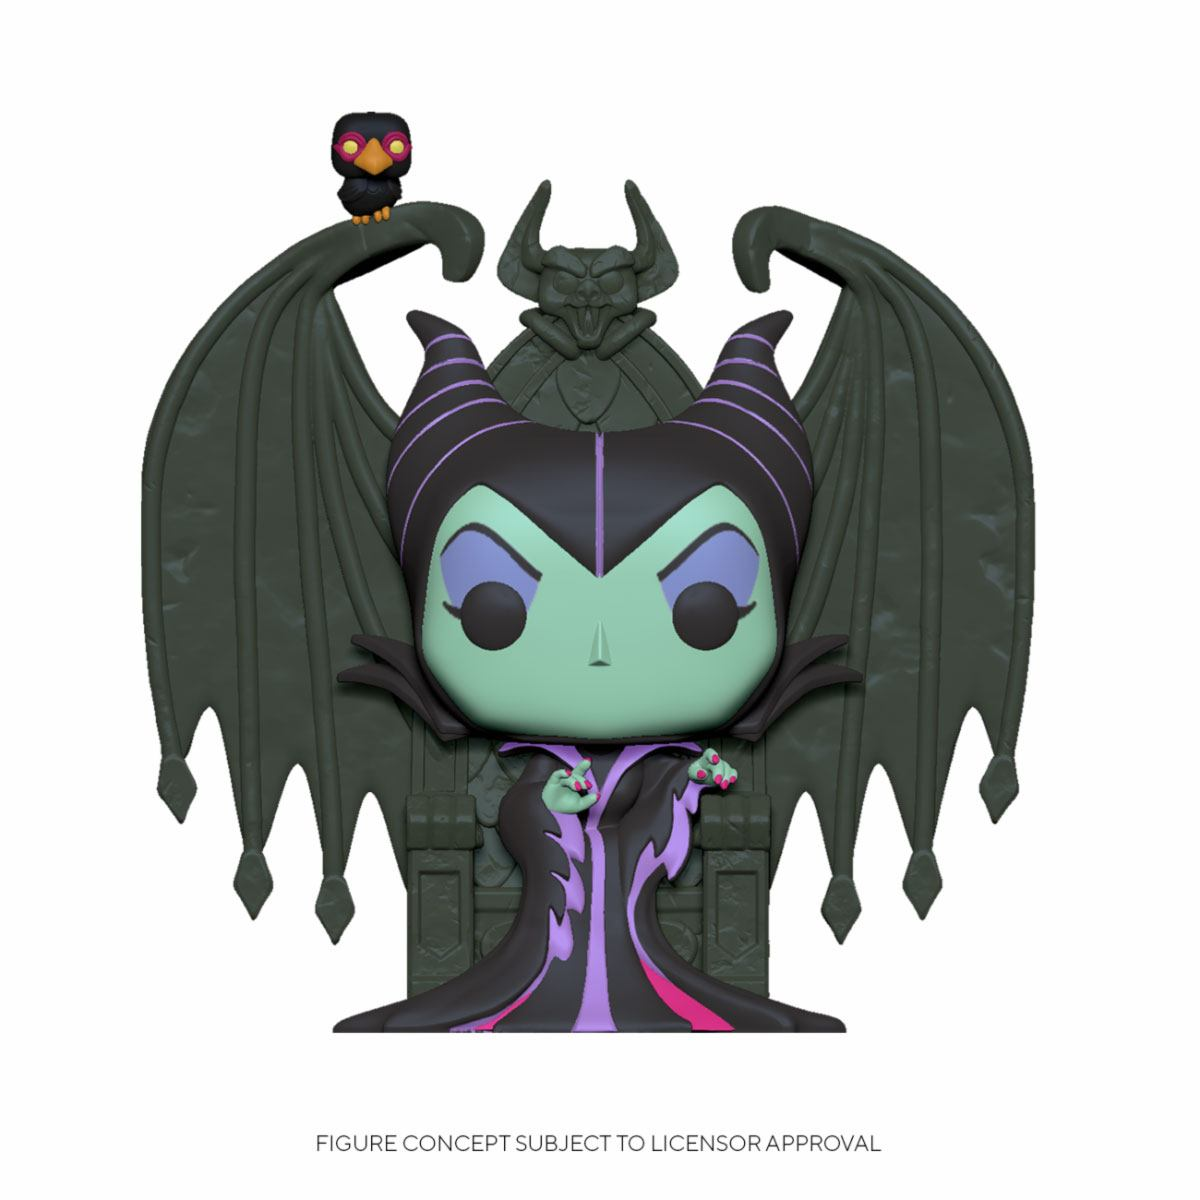 DISNEY POP! DELUXE MOVIES VINYL FIGURE MALEFICENT ON THRONE